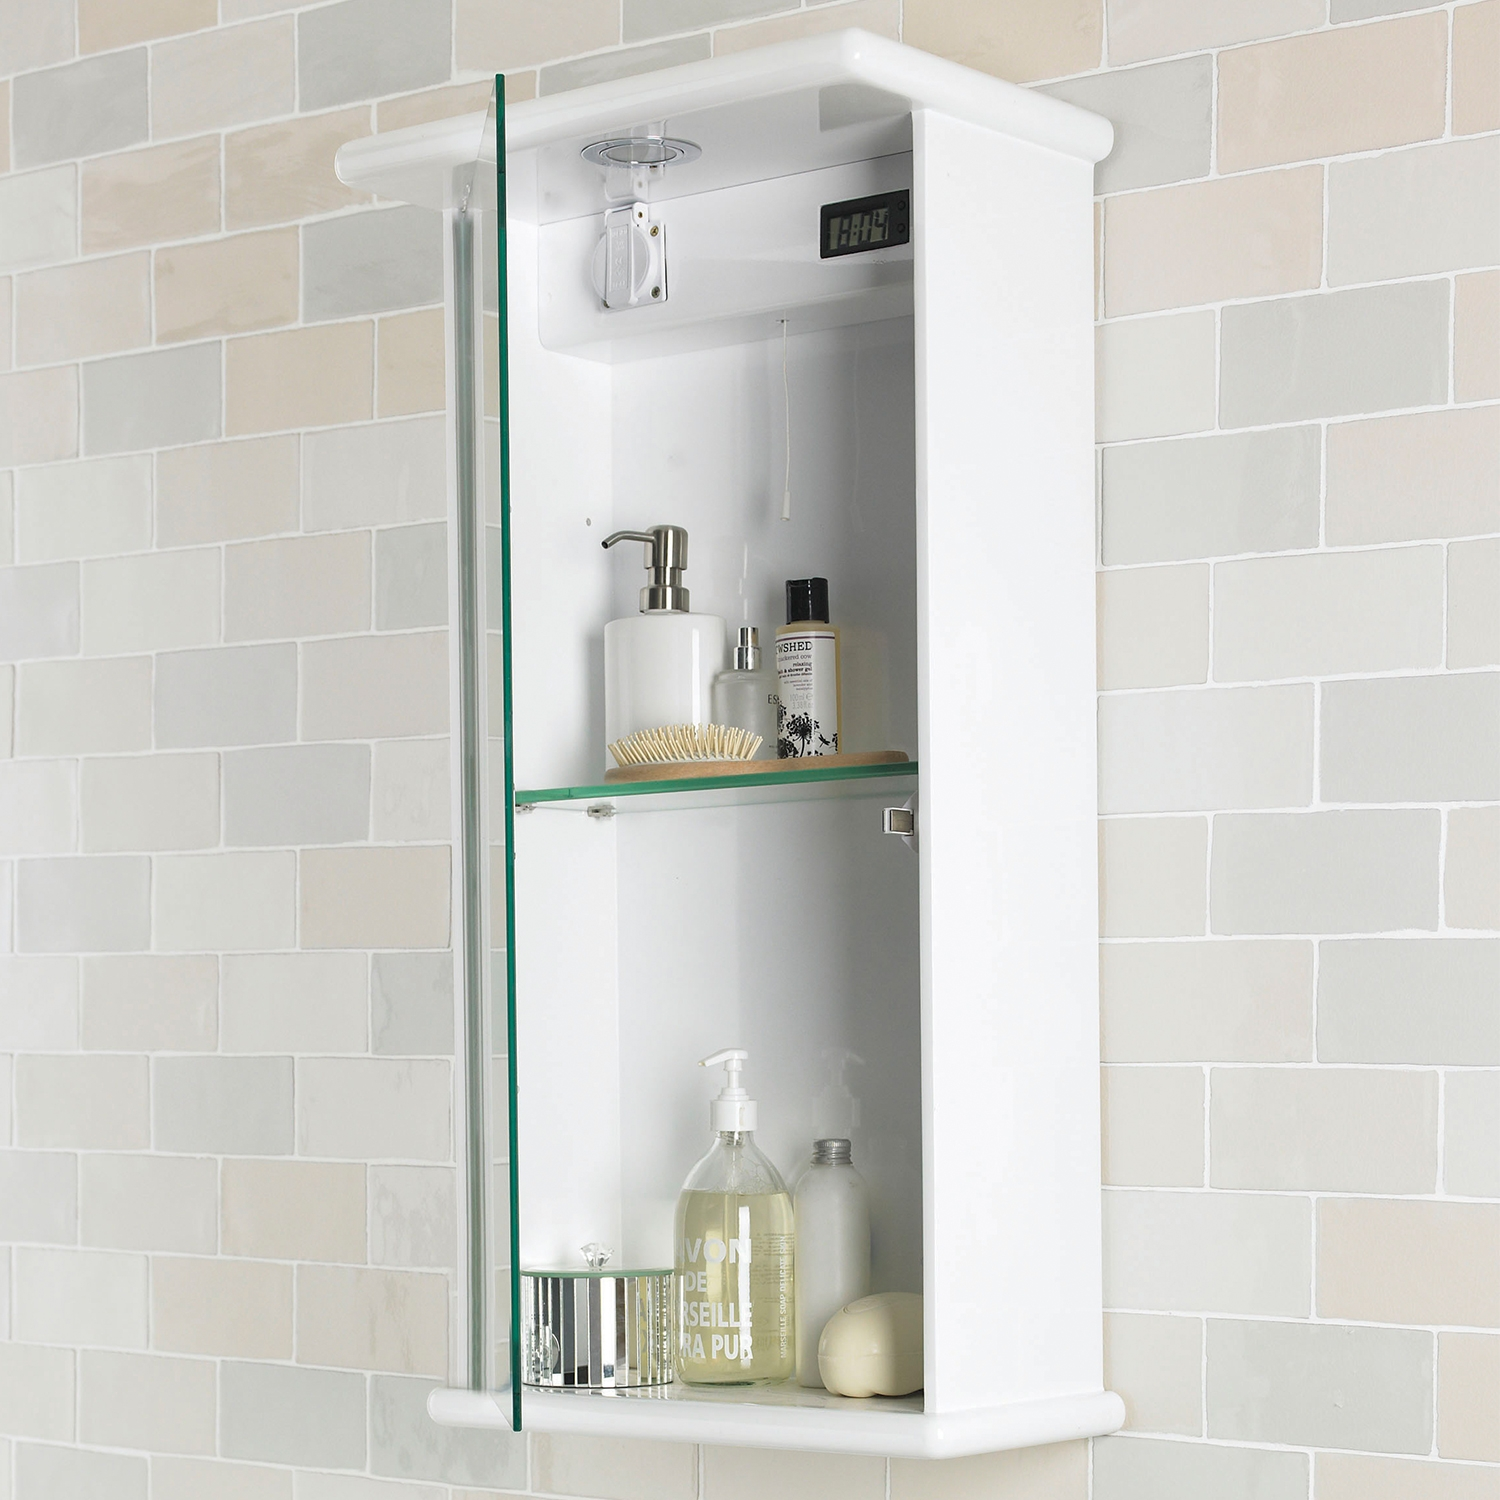 Premier Niche Mirrored Cabinet 800mm H x 400mm W White